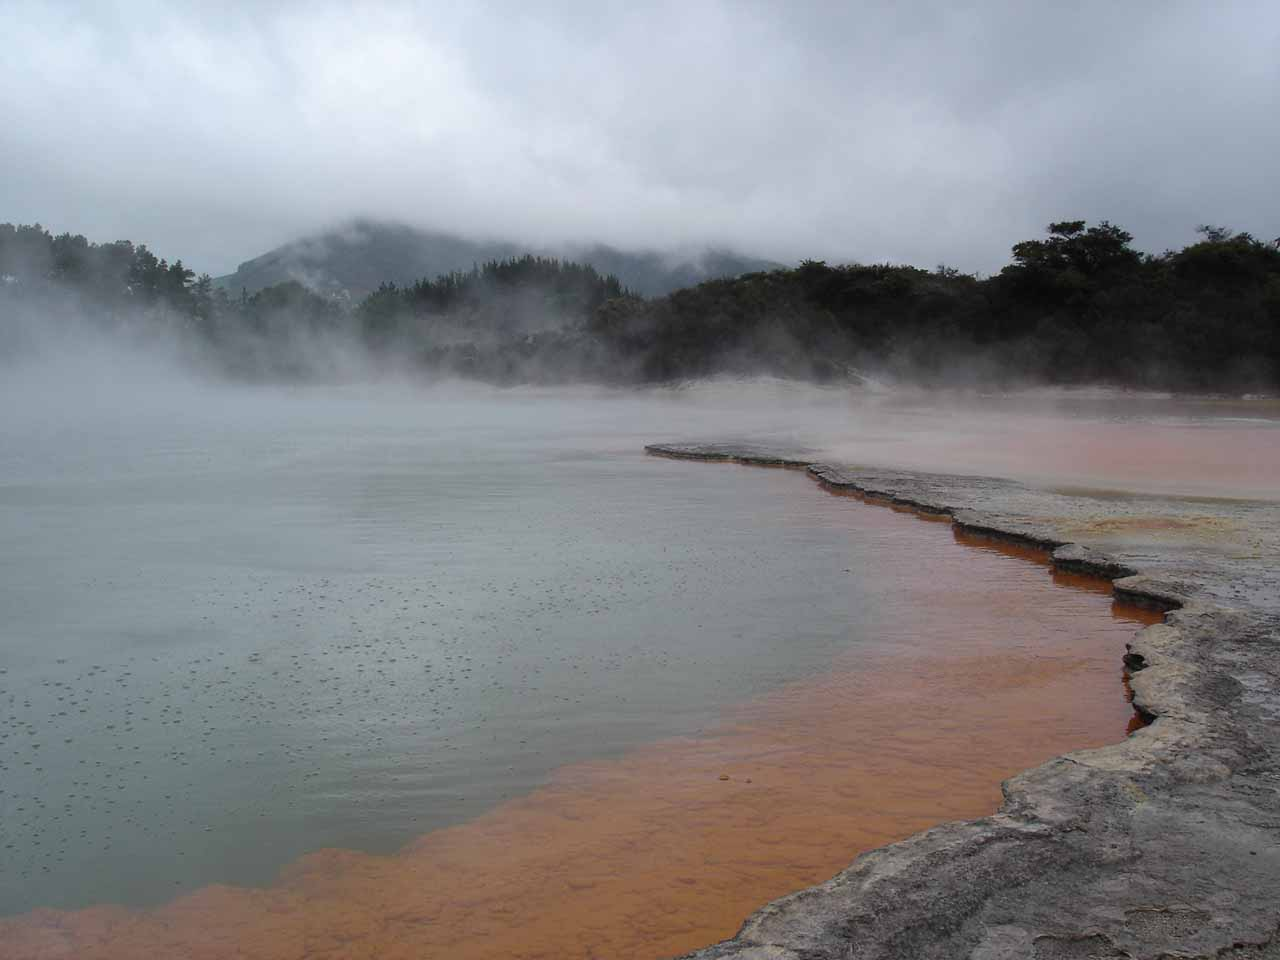 Another one of the impressive sights of Wai-o-tapu was the colorful Champagne Pool shown here (colorful even despite the rainy conditions)